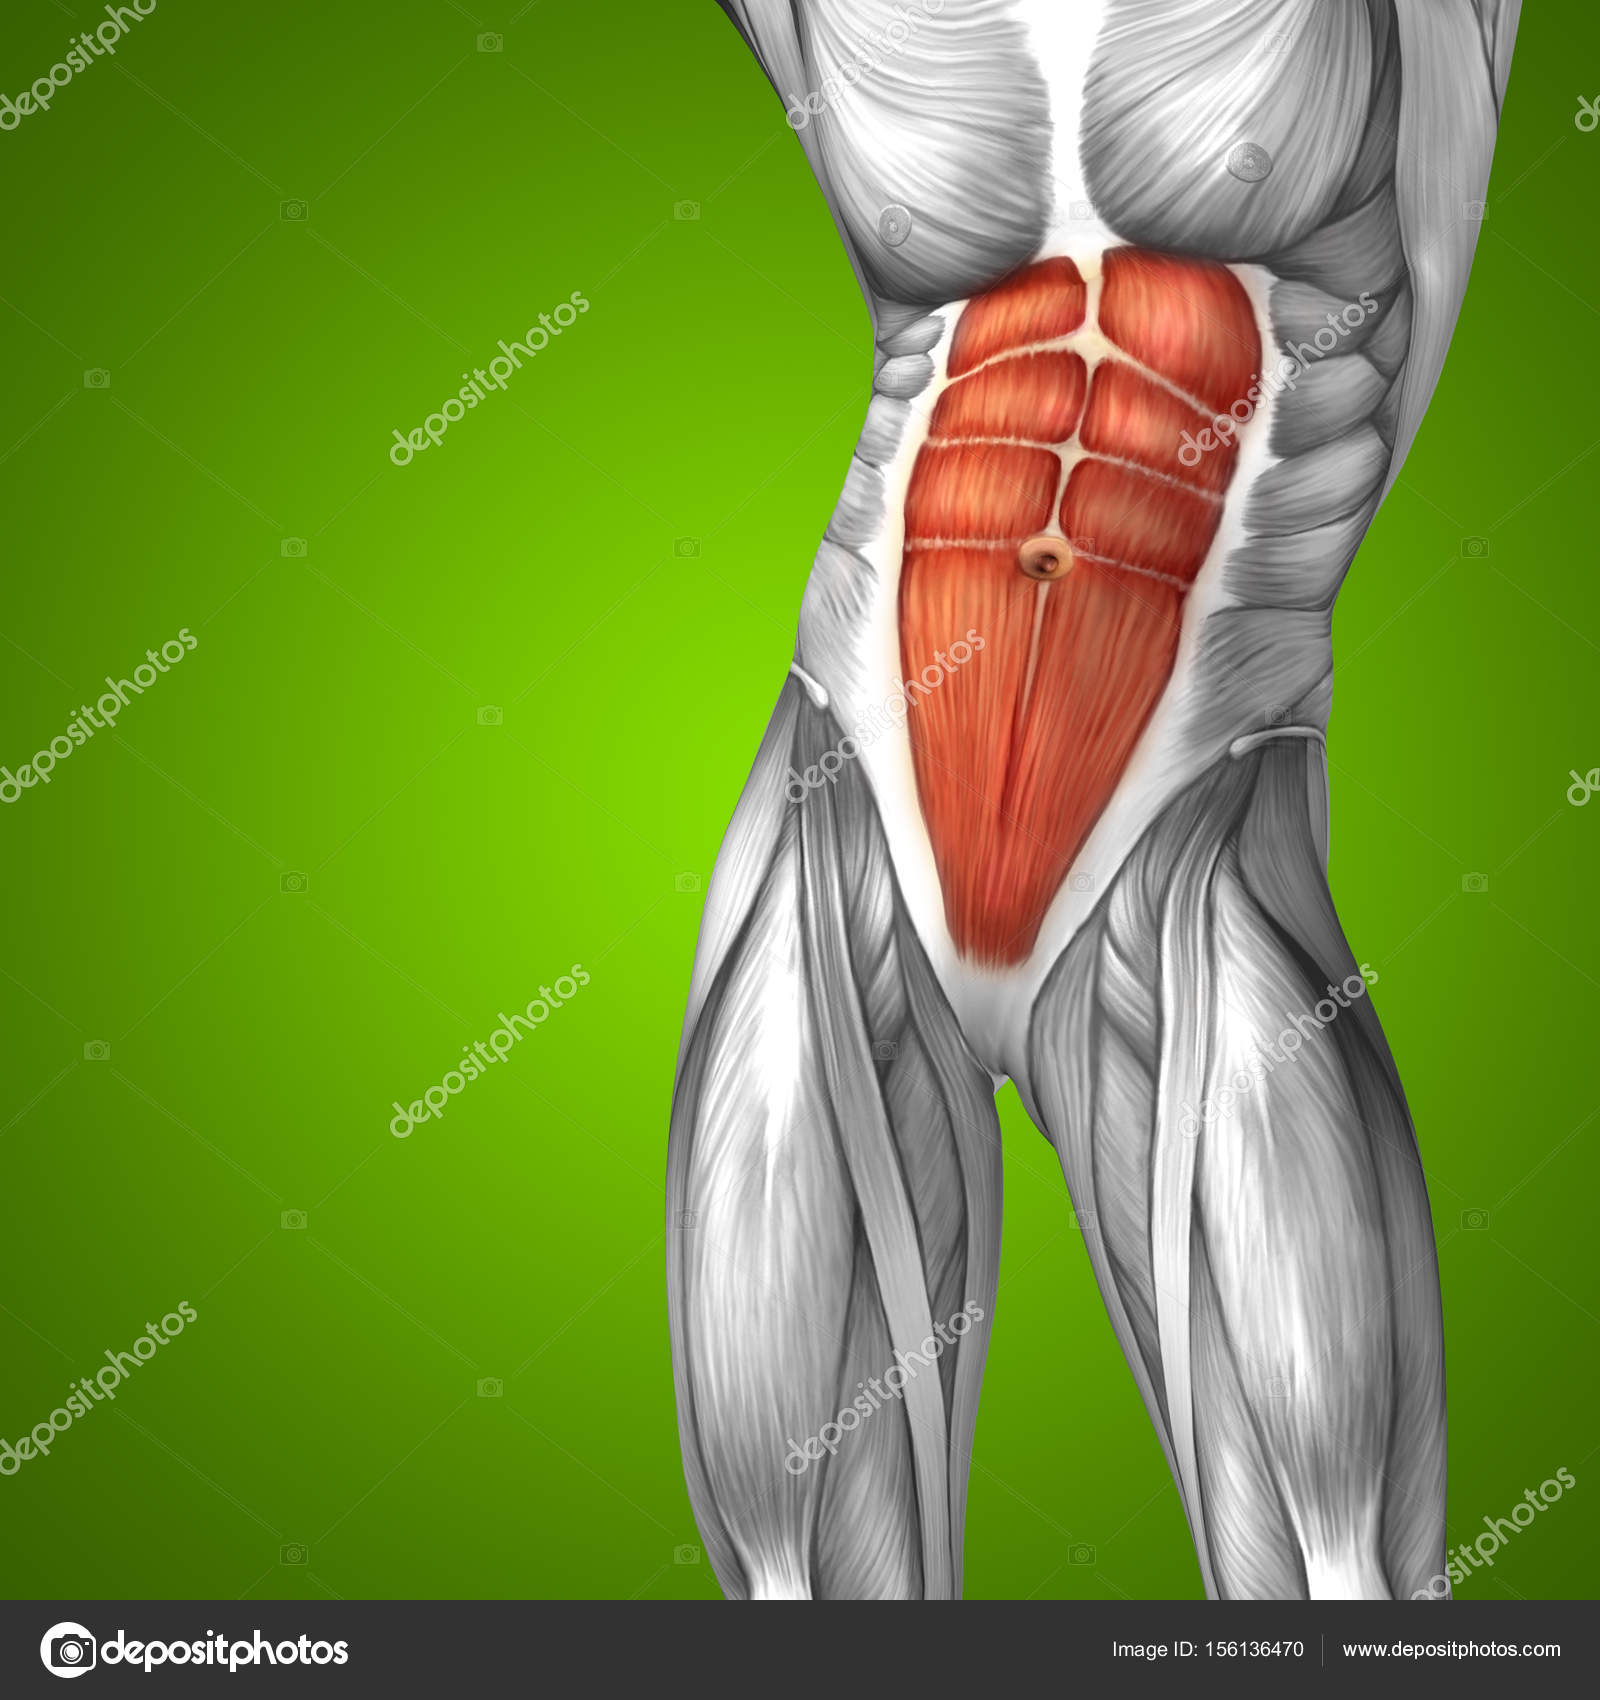 Human Chest Anatomy Stock Photo Design36 156136470